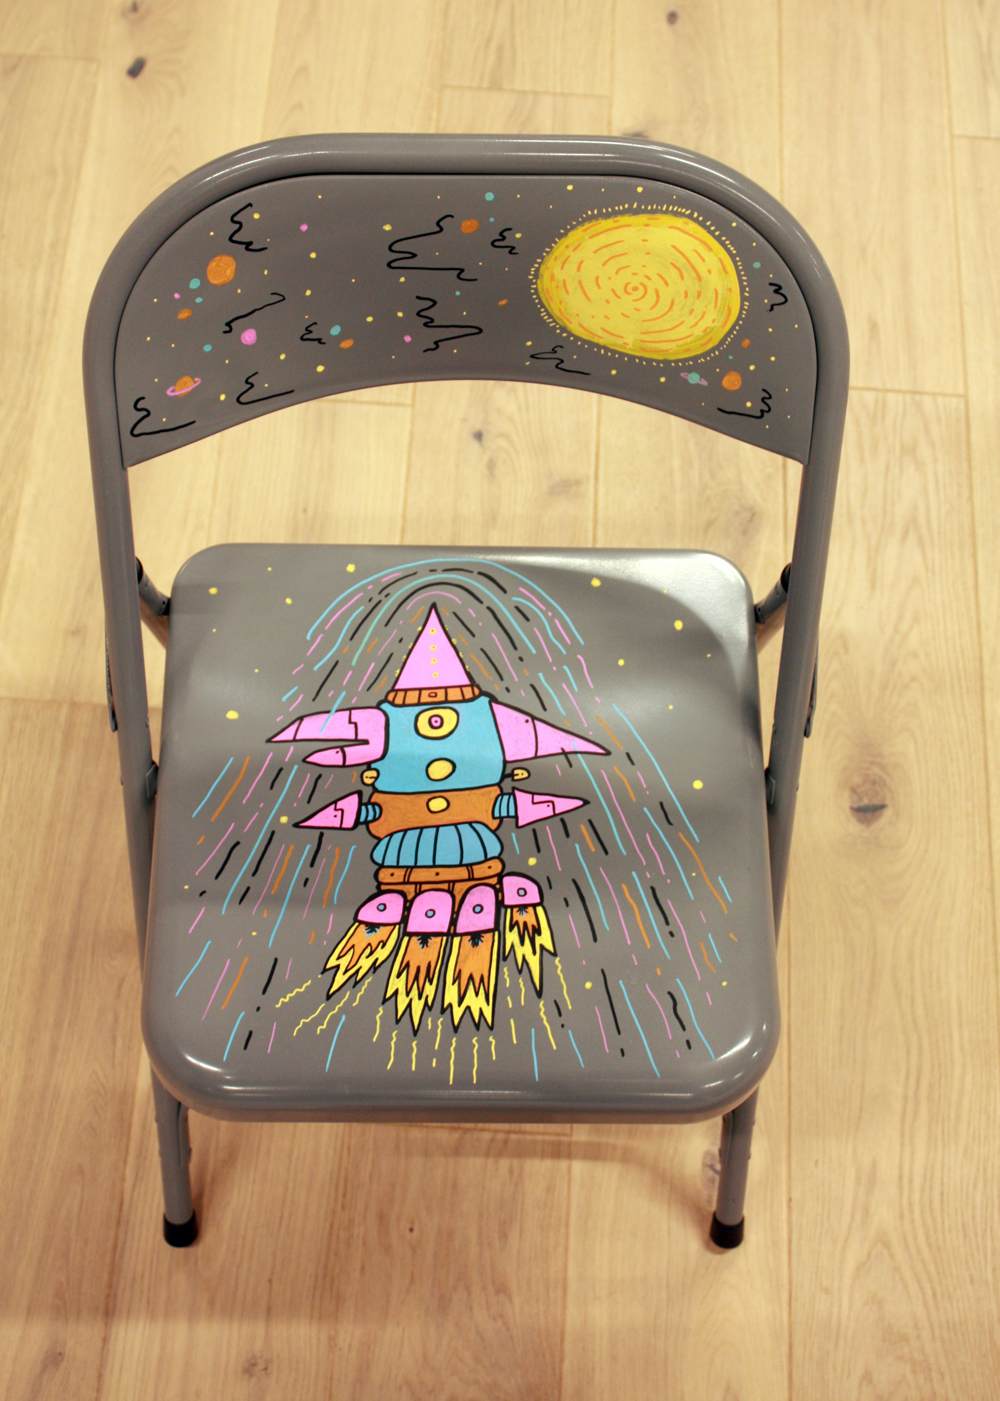 rocketship, doodles, chair drawing